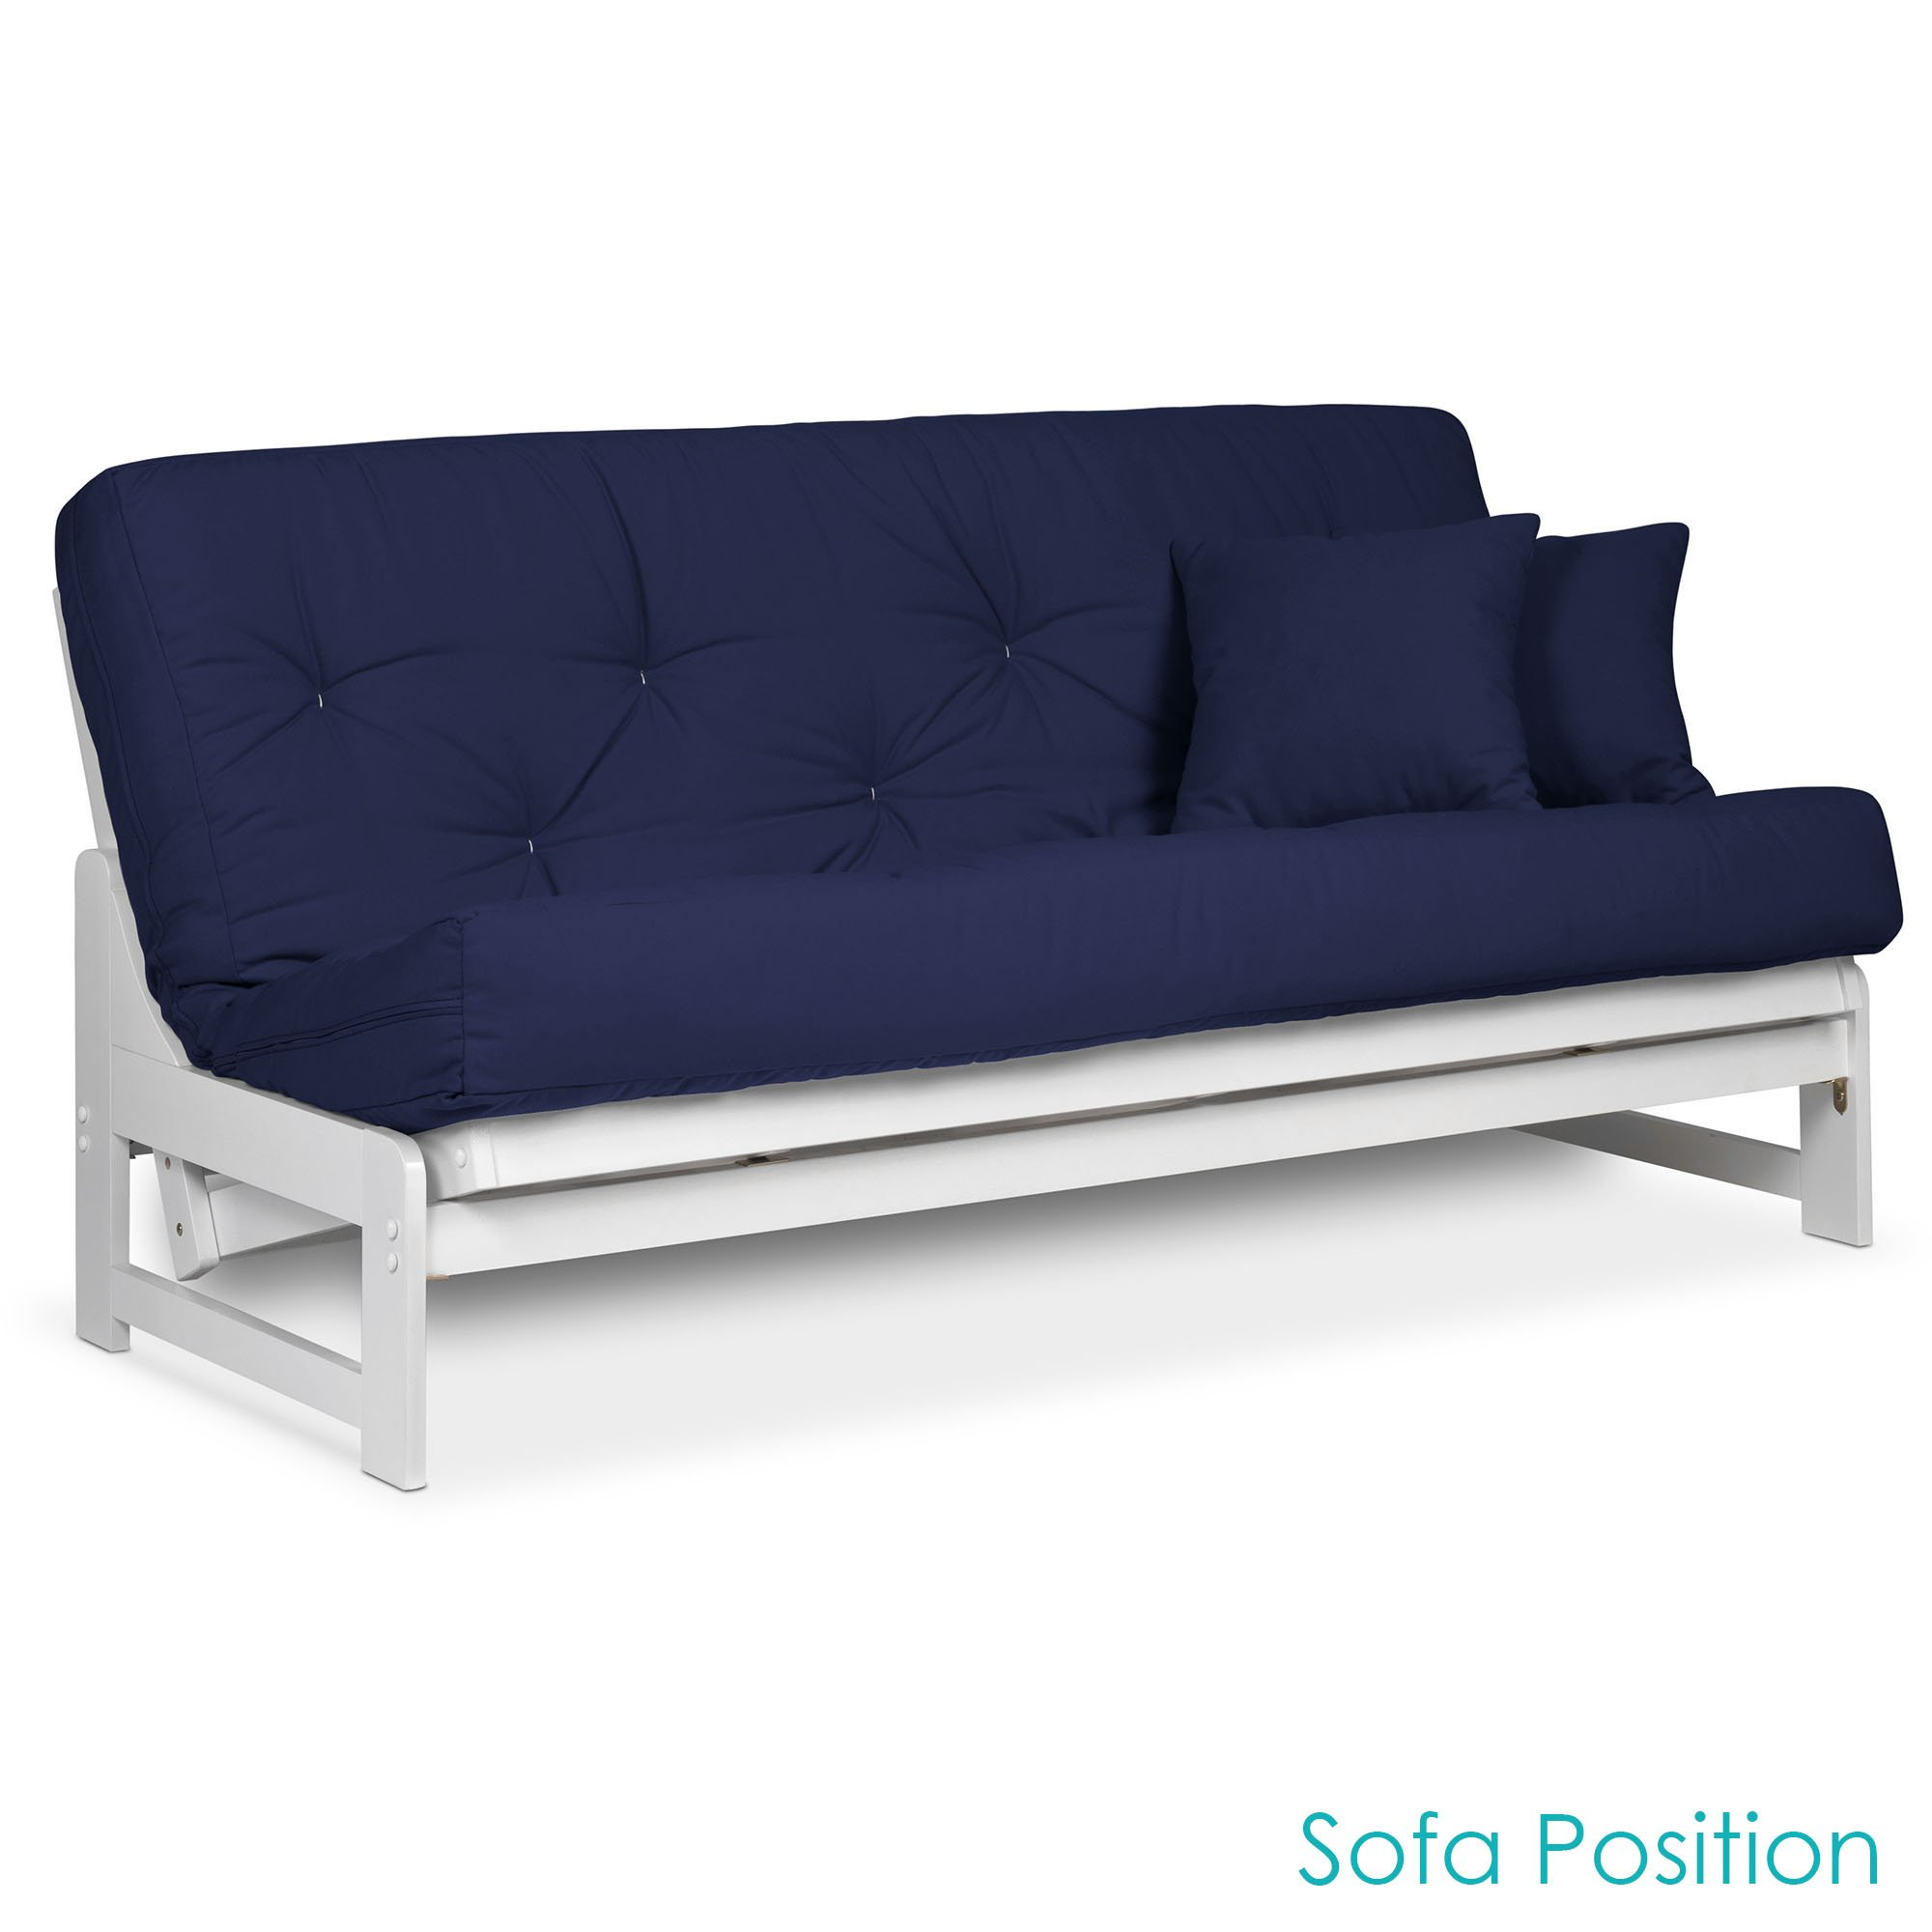 Get Quotations Arden White Futon Set Queen Size Armless Frame With Mattress Included Twill Navy